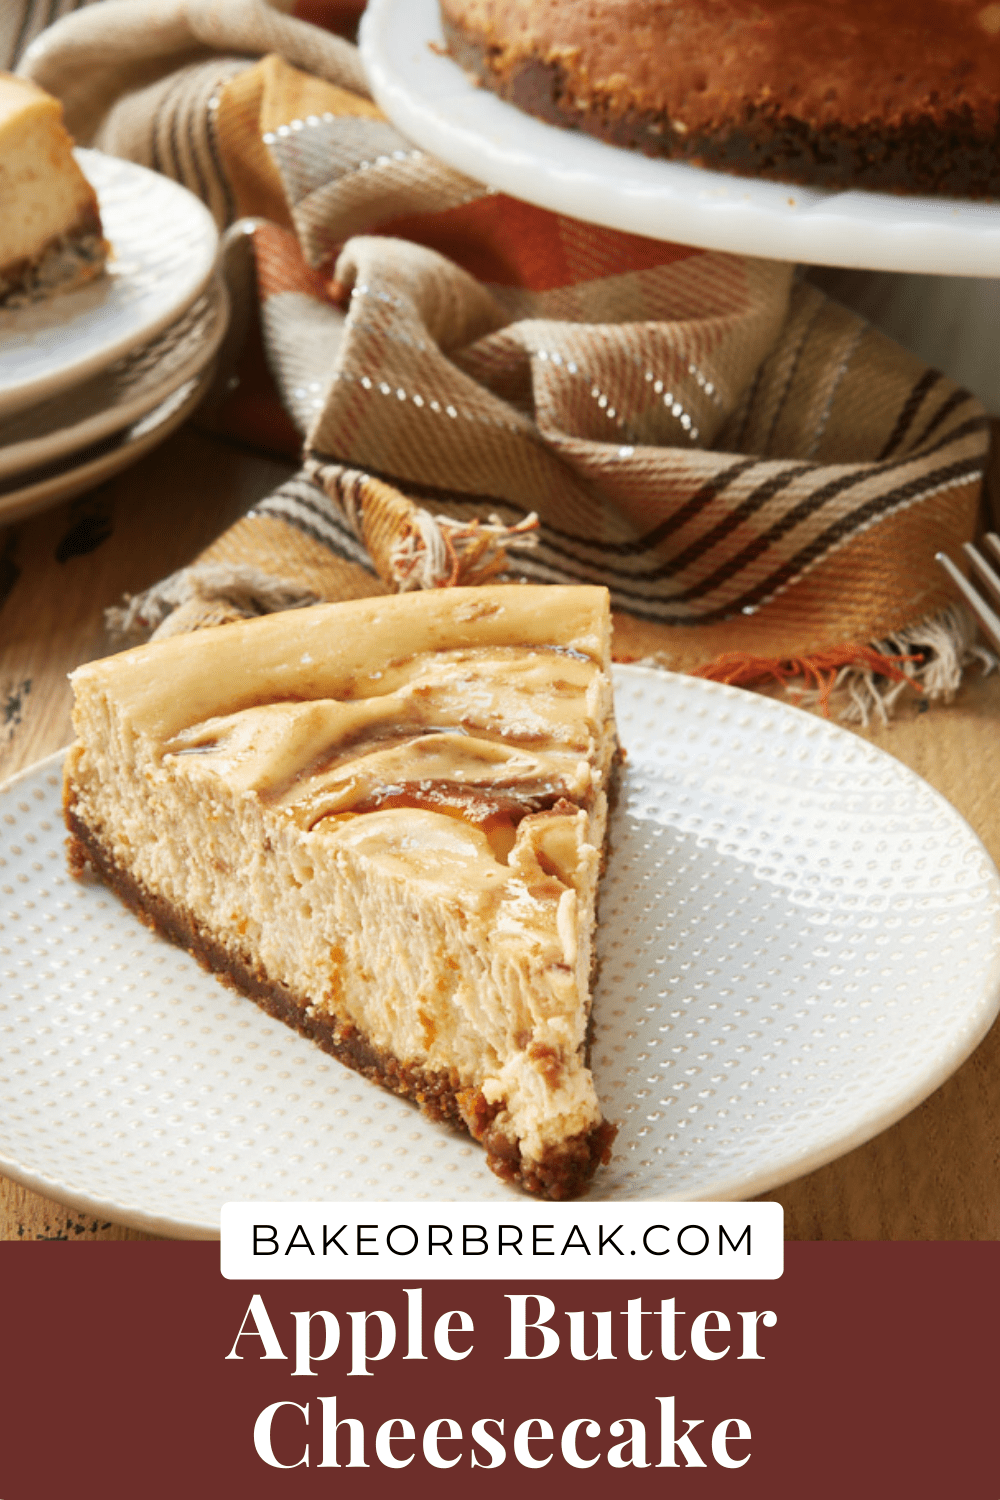 Apple Butter Cheesecake bakeorbreak.com